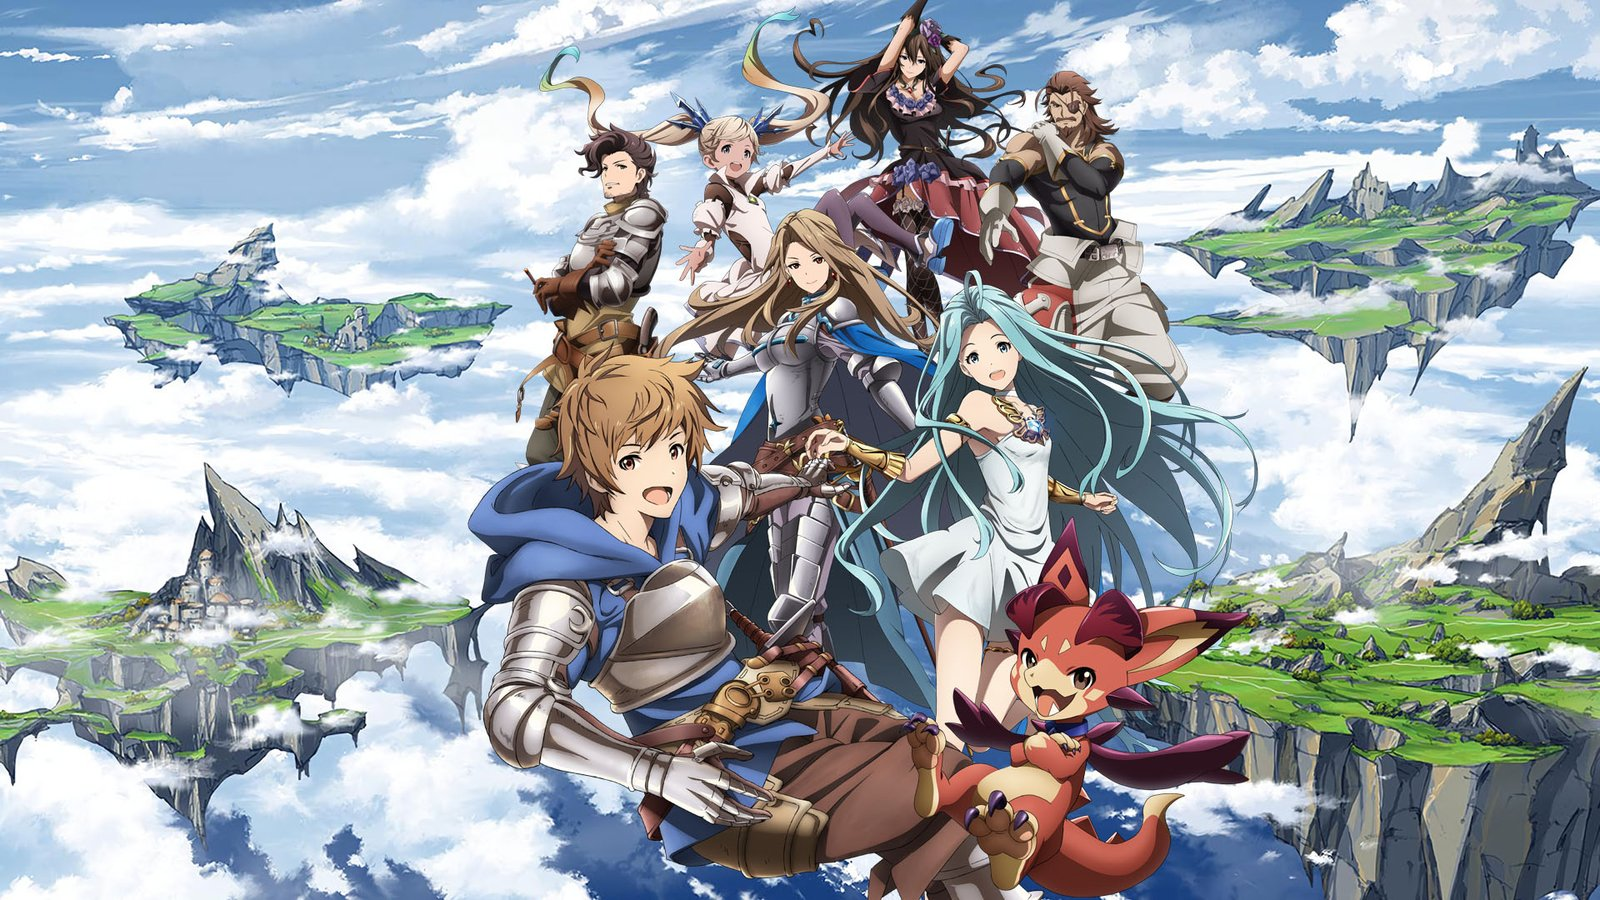 Повесть о Небесных островах / Granblue Fantasy The Animation